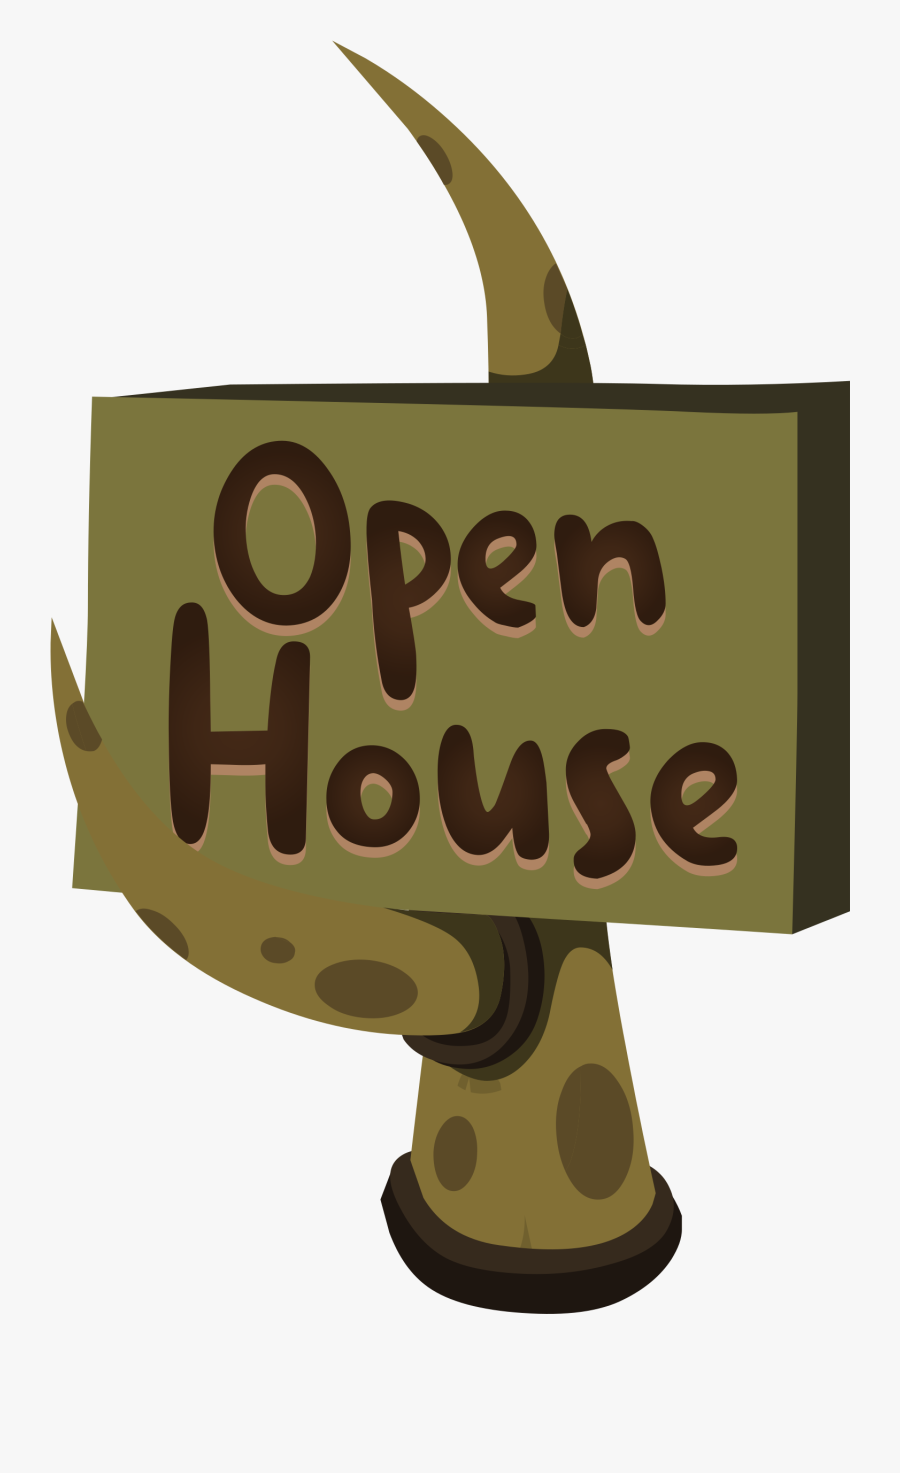 This Free Icons Png Design Of Firebog Open House Sign - Open House Clipart .png, Transparent Clipart